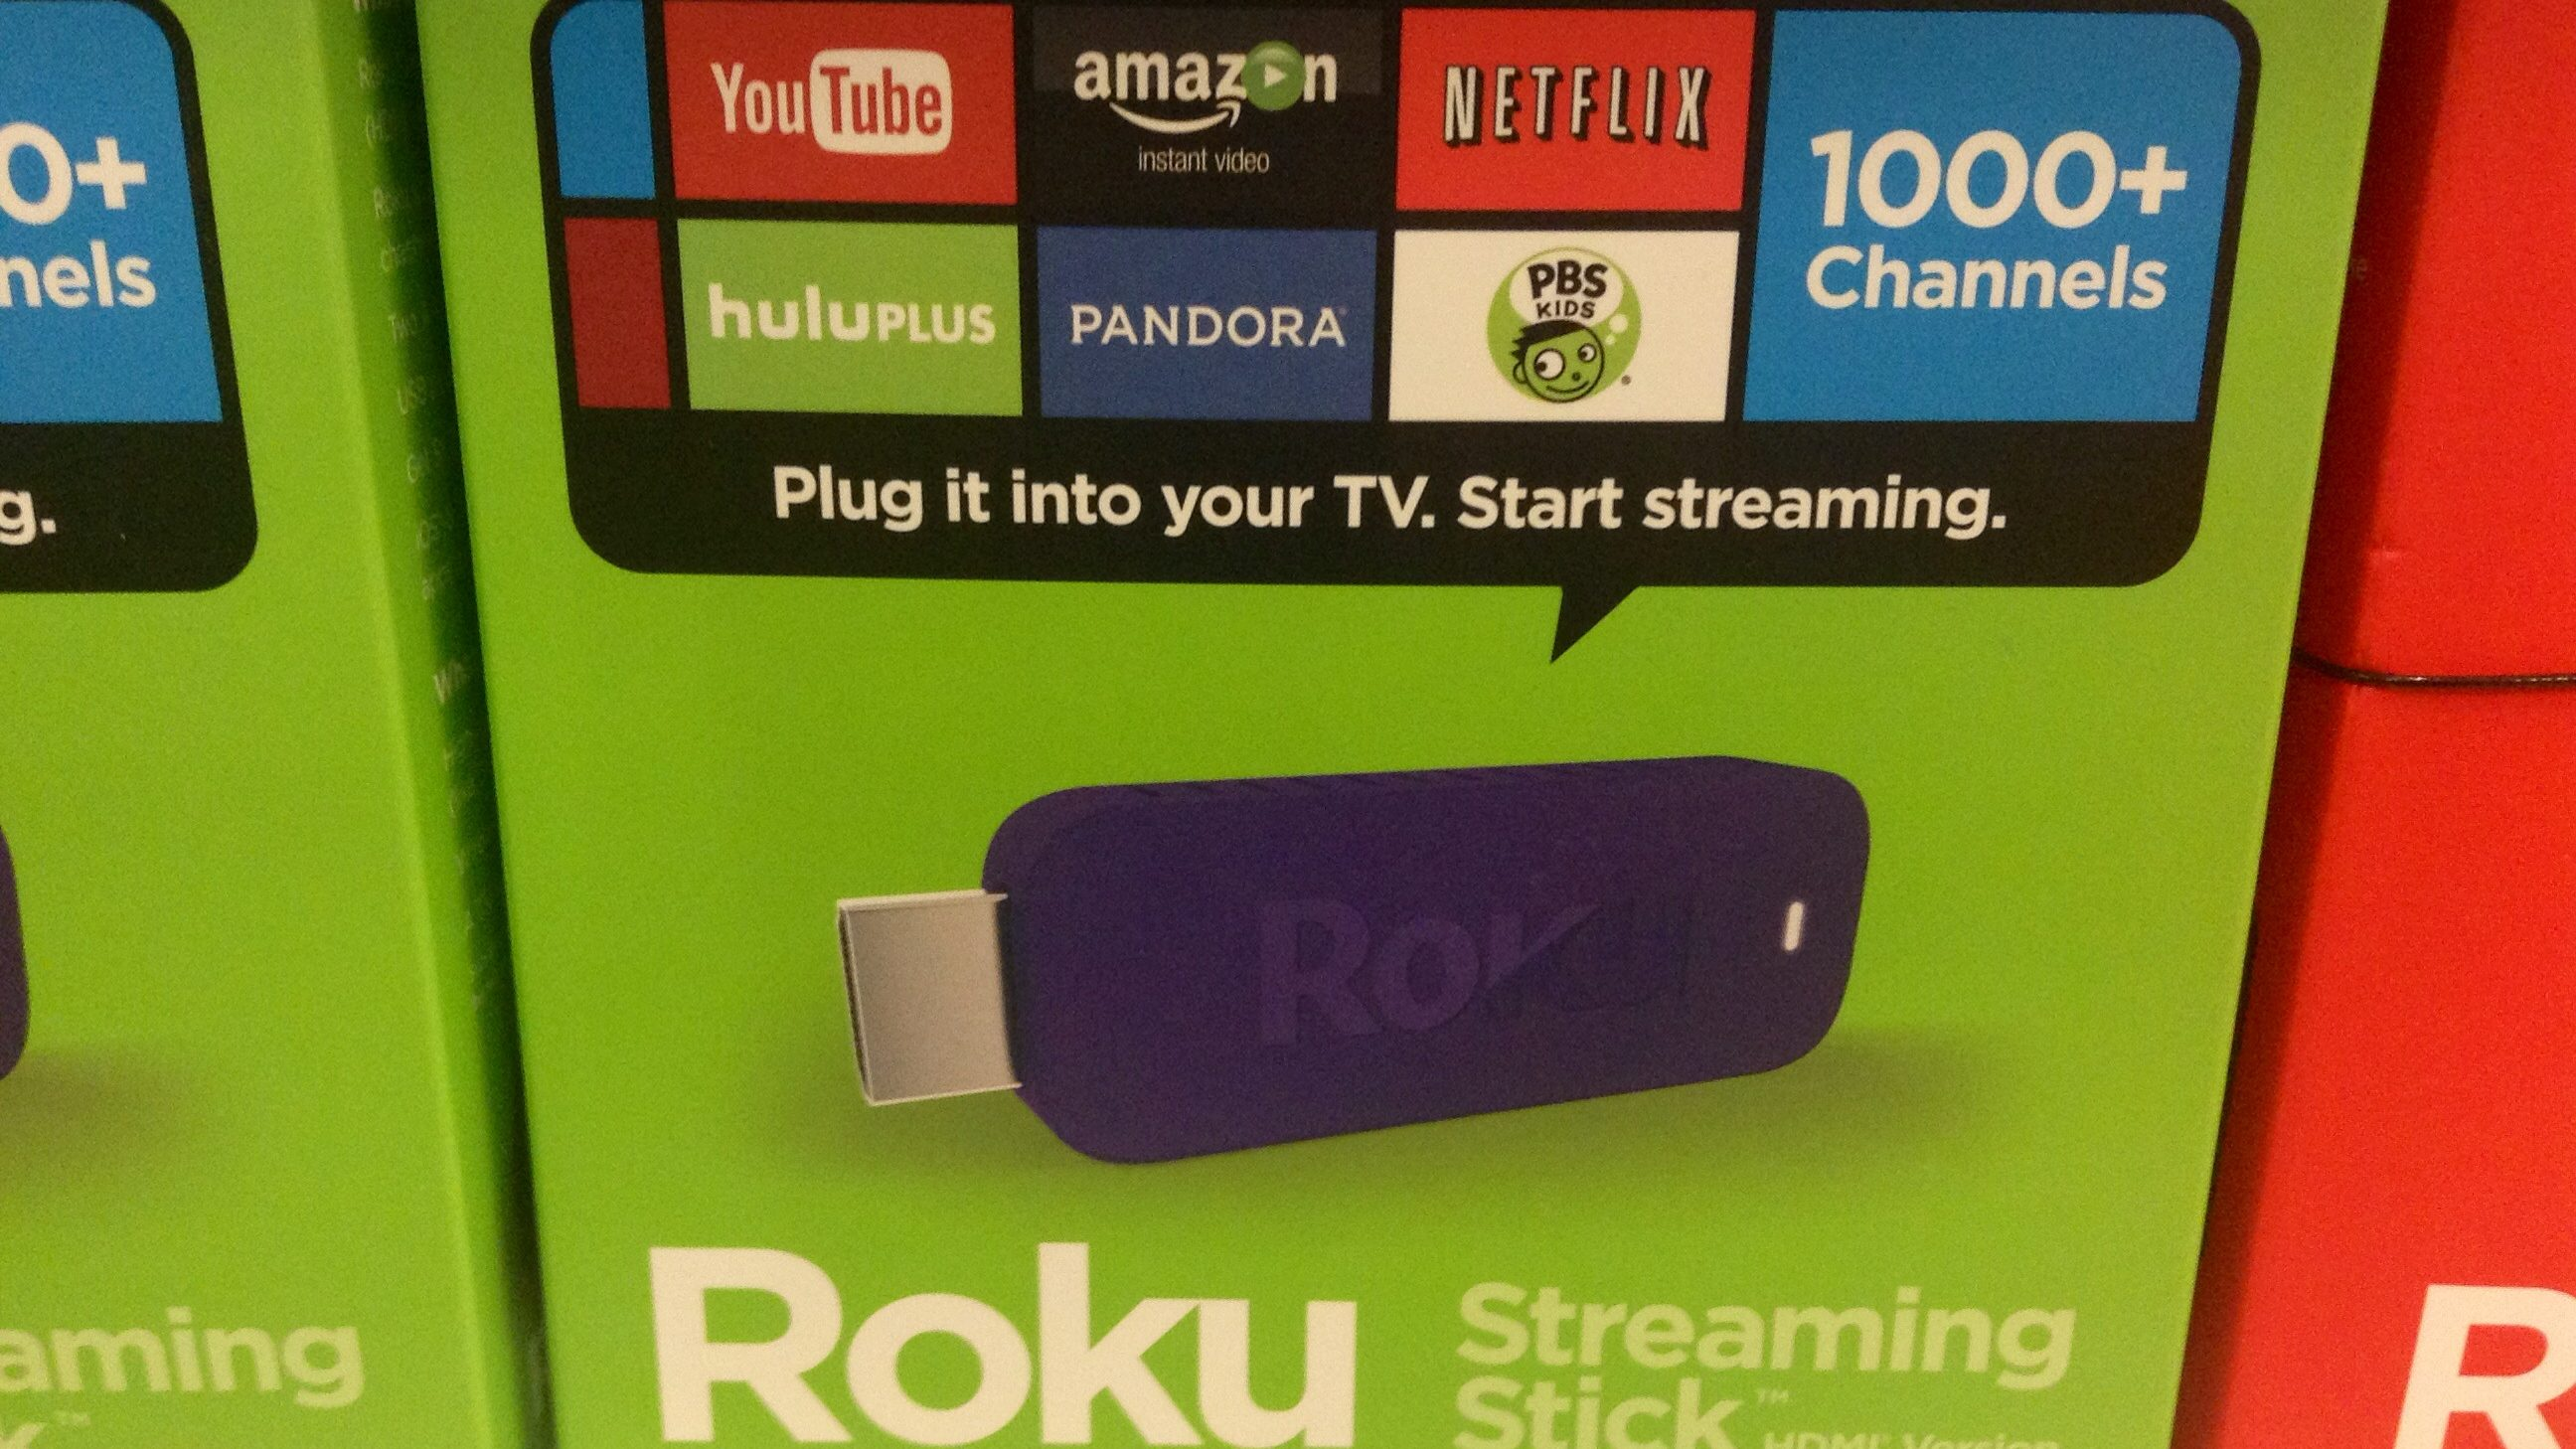 Roku streaming stick box